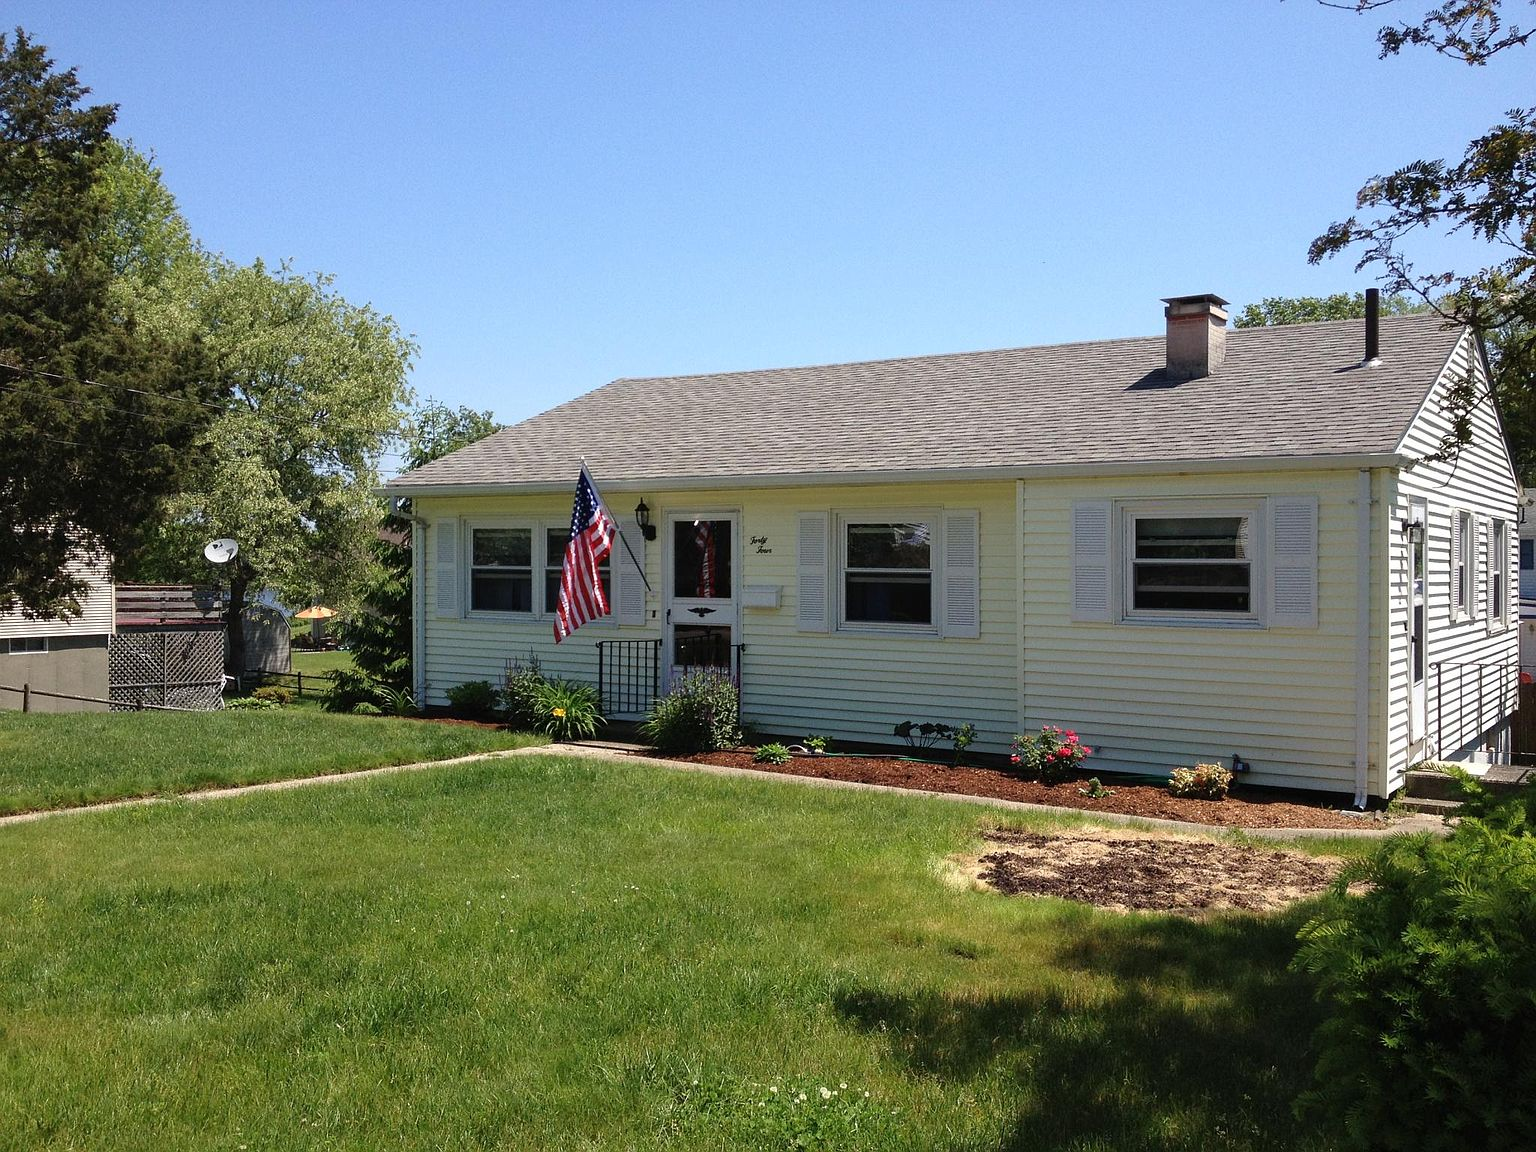 44 Shore Ave, Swansea, MA 02777   Zillow